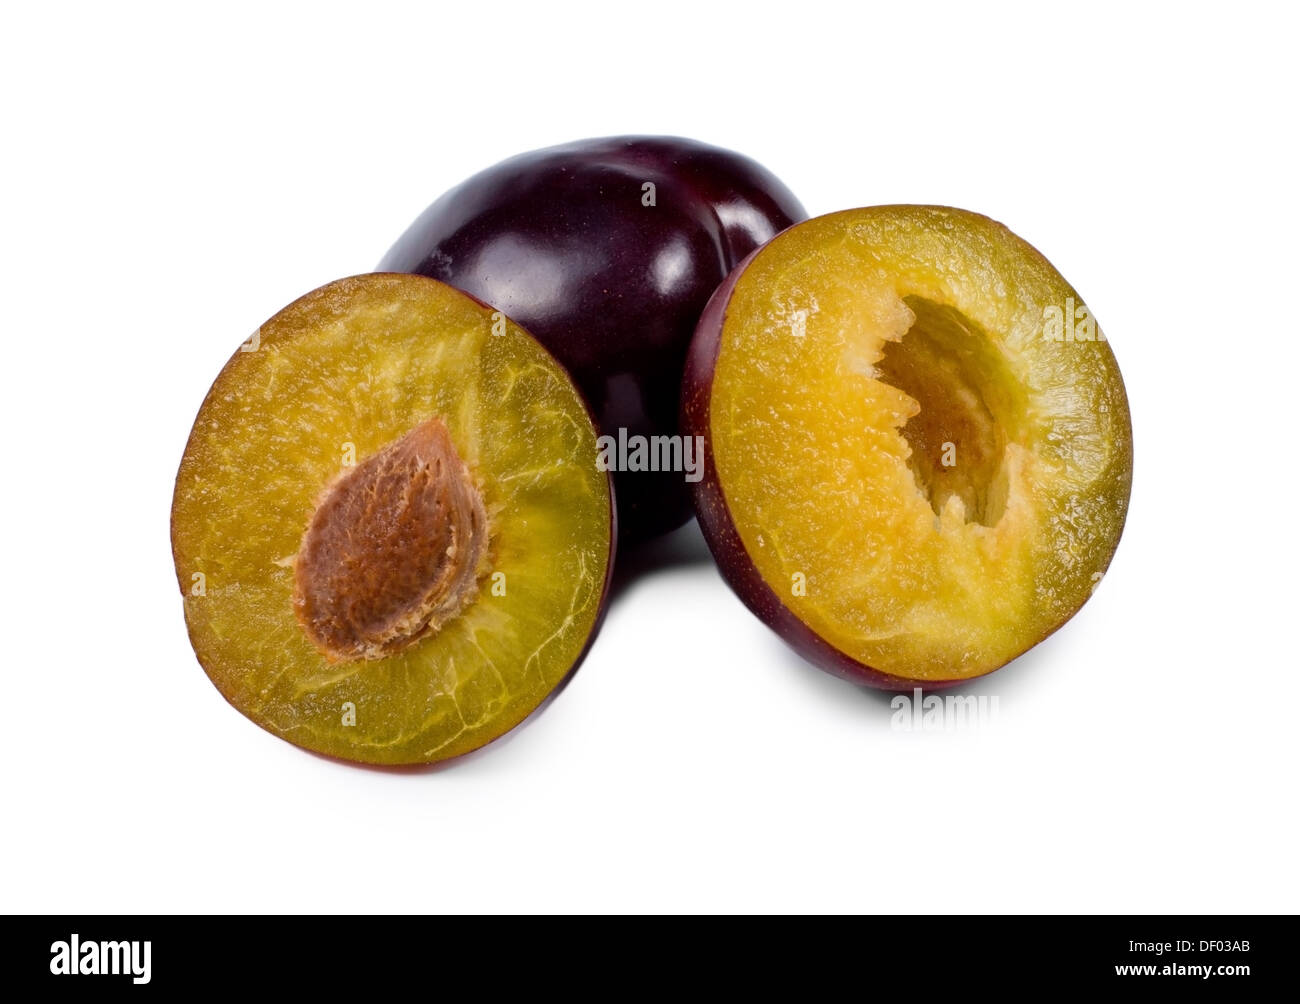 Closeup view of the two halves of a fresh purple plum showing the texture of the flesh and pip propped up against Stock Photo